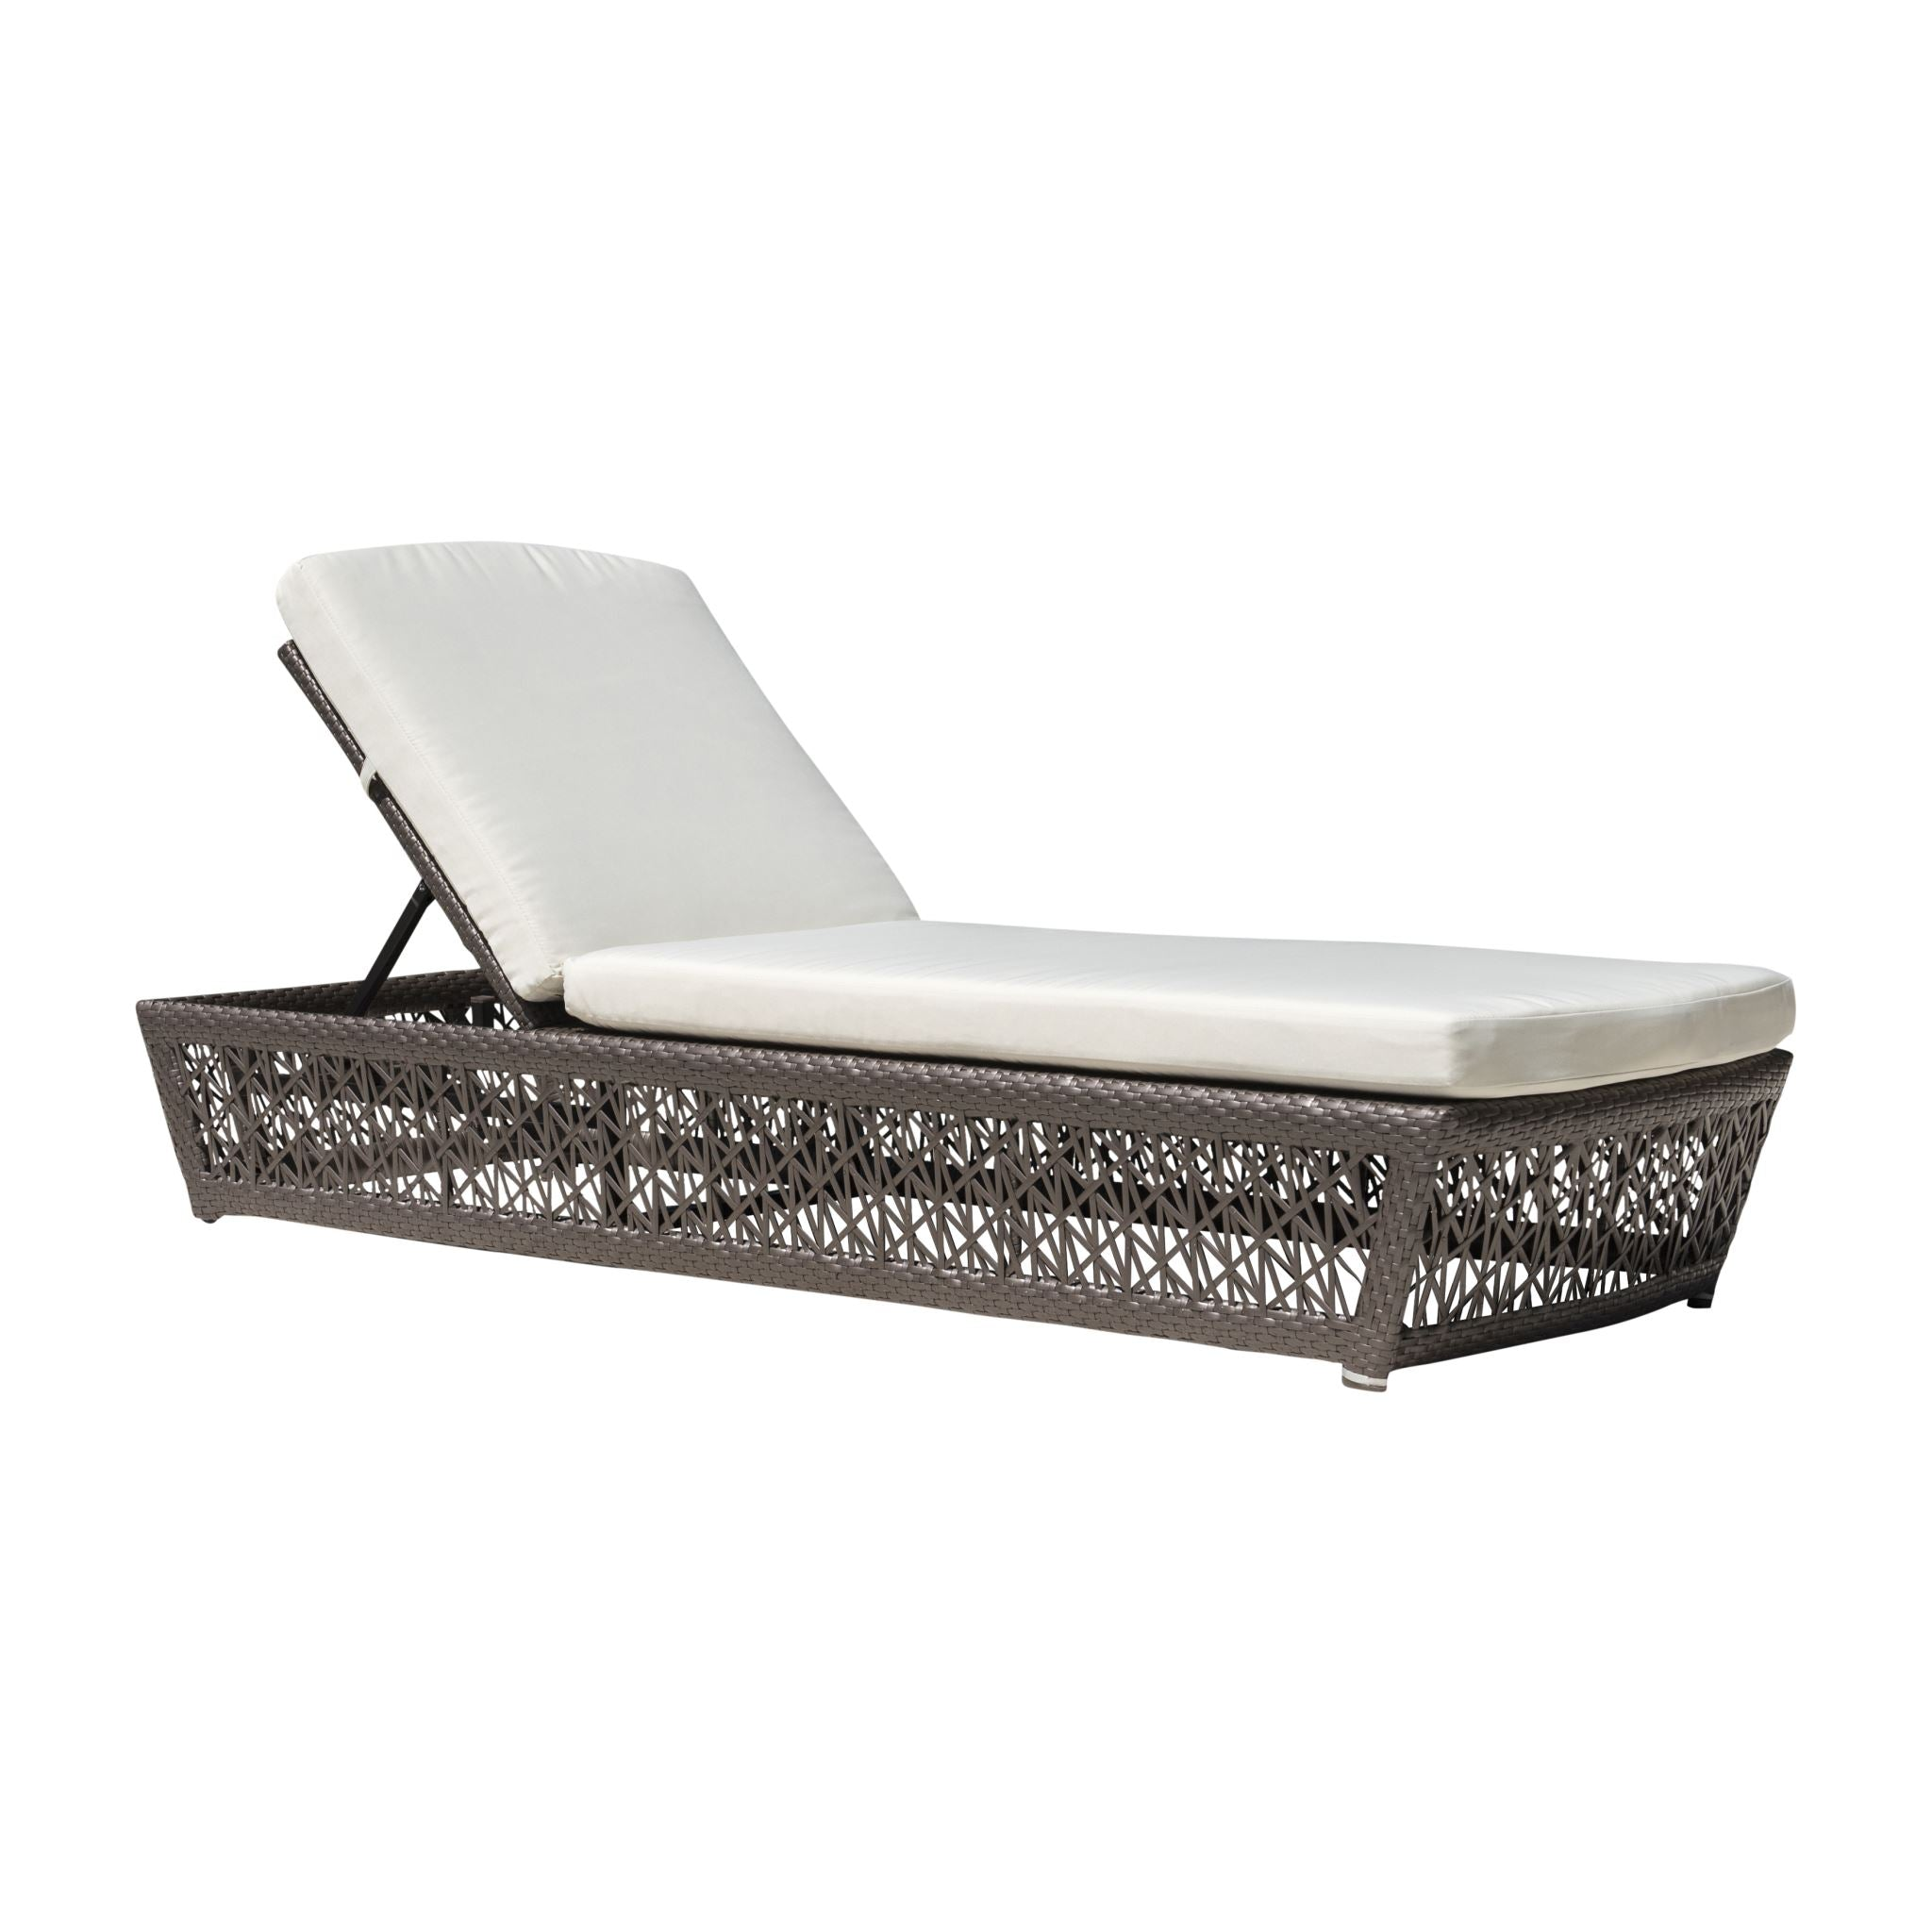 p outdoor casual zoom sunset furniture astoria chaise comfort cushion